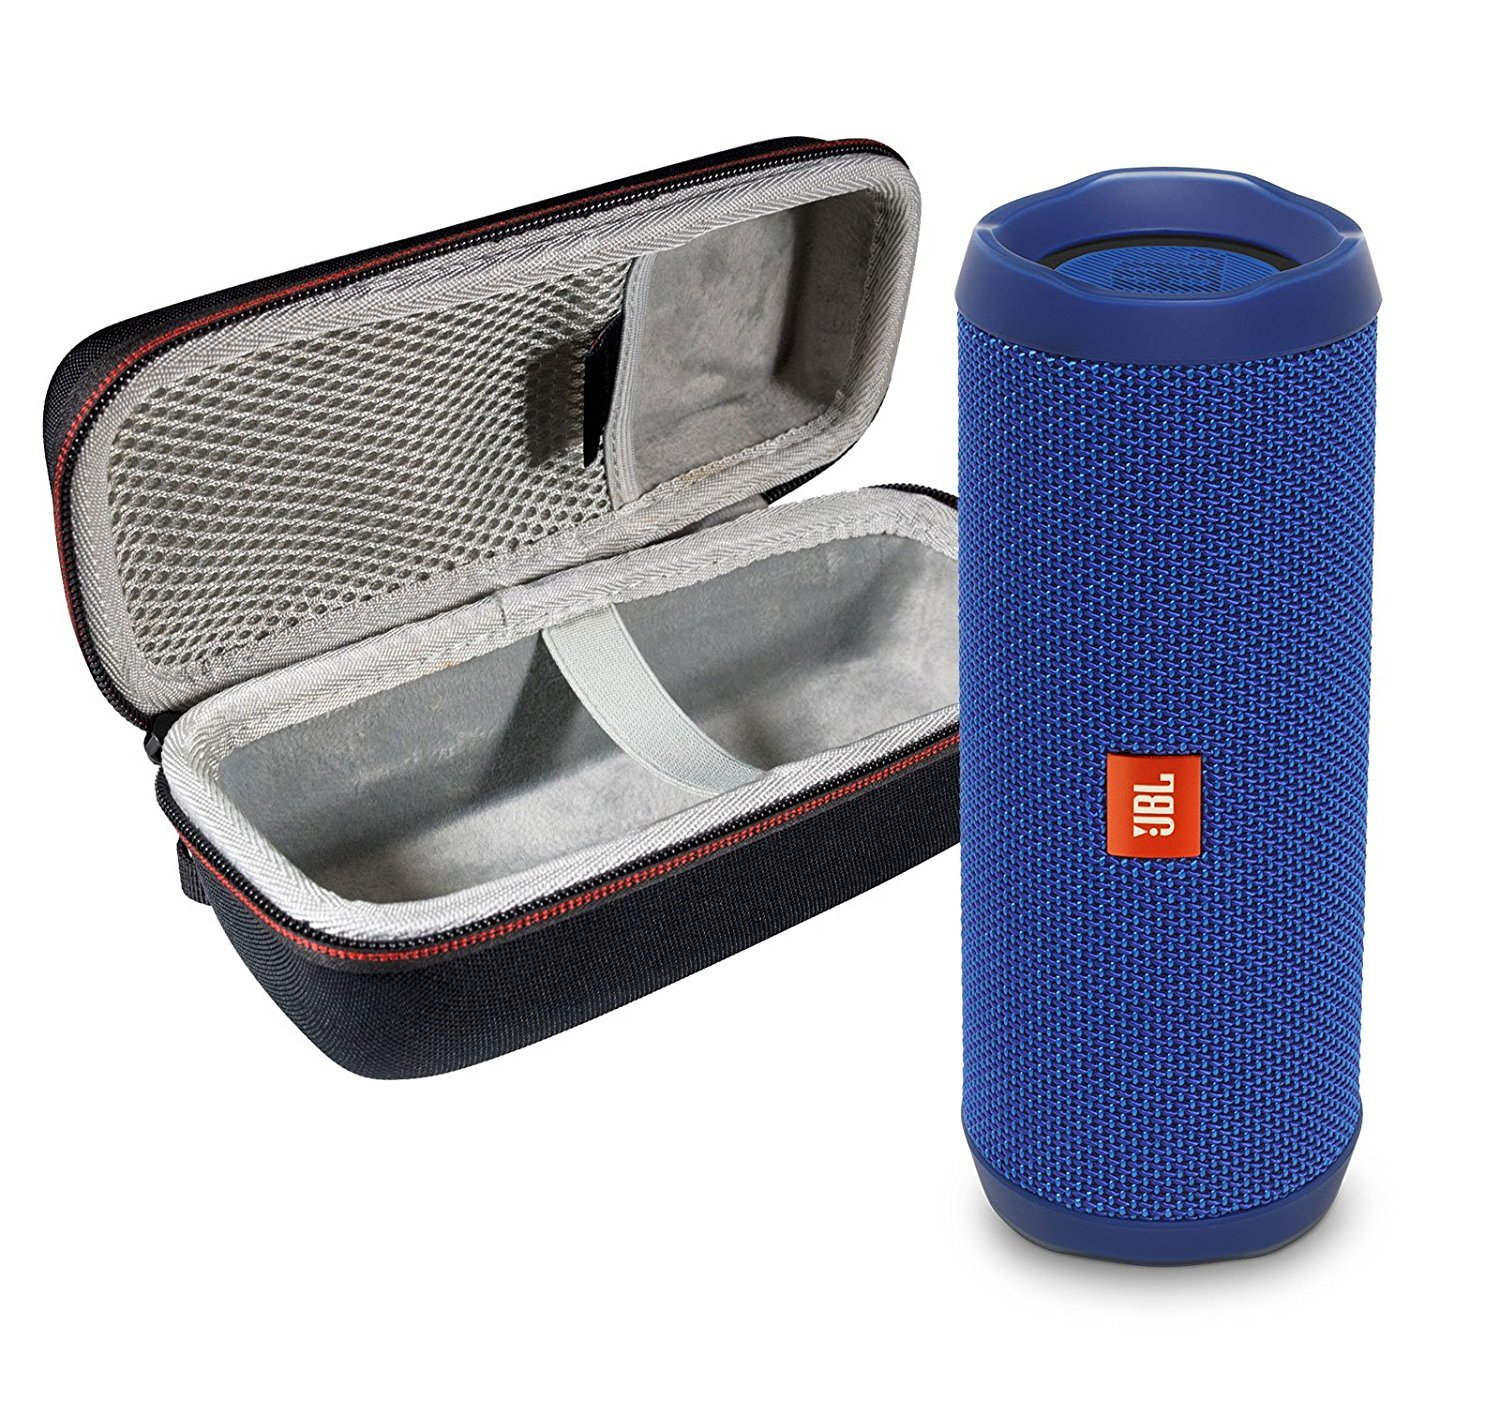 JBL Flip 4 Portable Bluetooth Wireless Speaker Bundle with Protective Travel Case - Blue by JBL